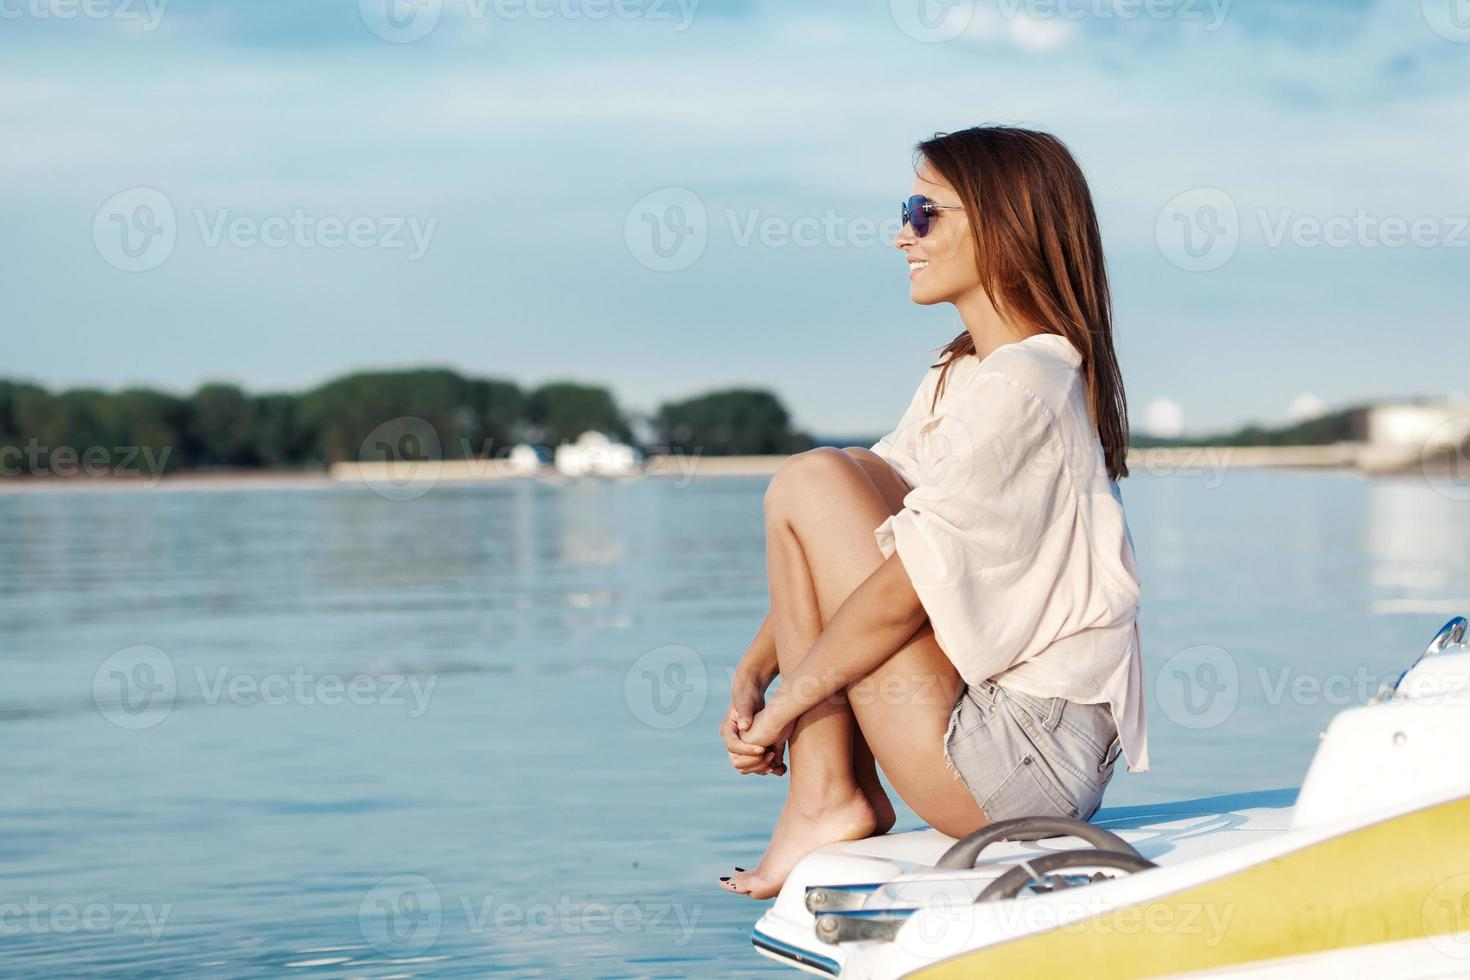 Boat woman smiling happy looking at the sea photo